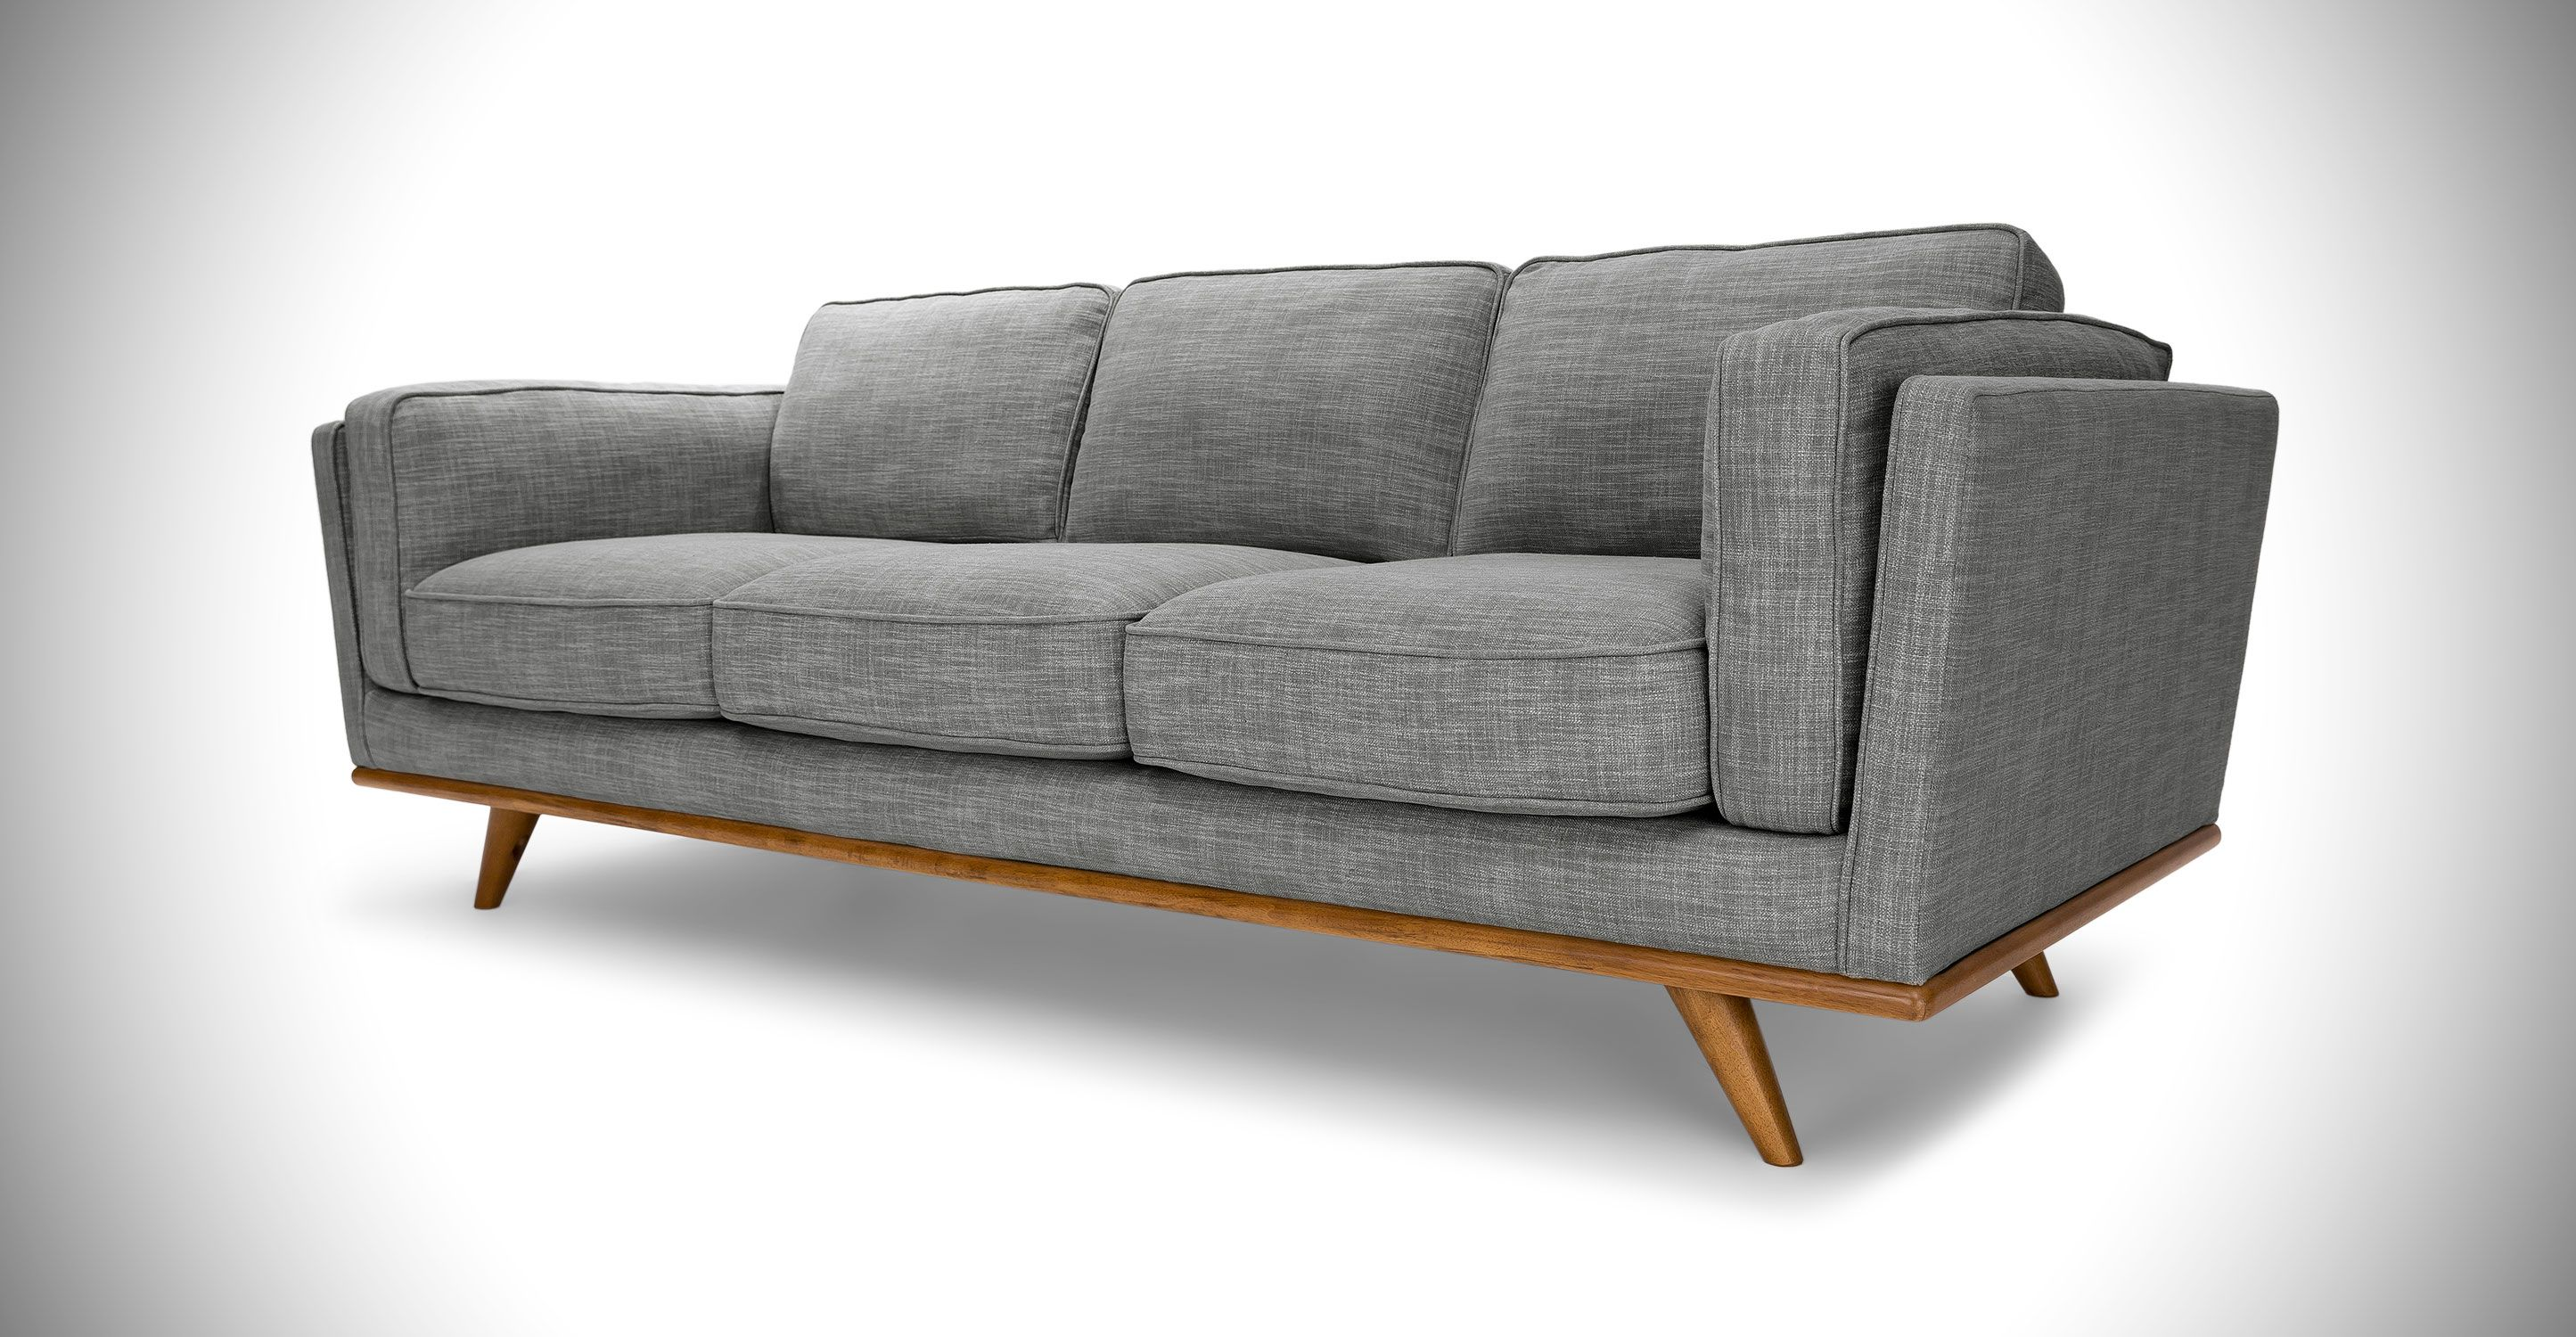 Sofa Settee Beds On Clearance Gray 3 Seater In Honey Oak Wood Article Timber